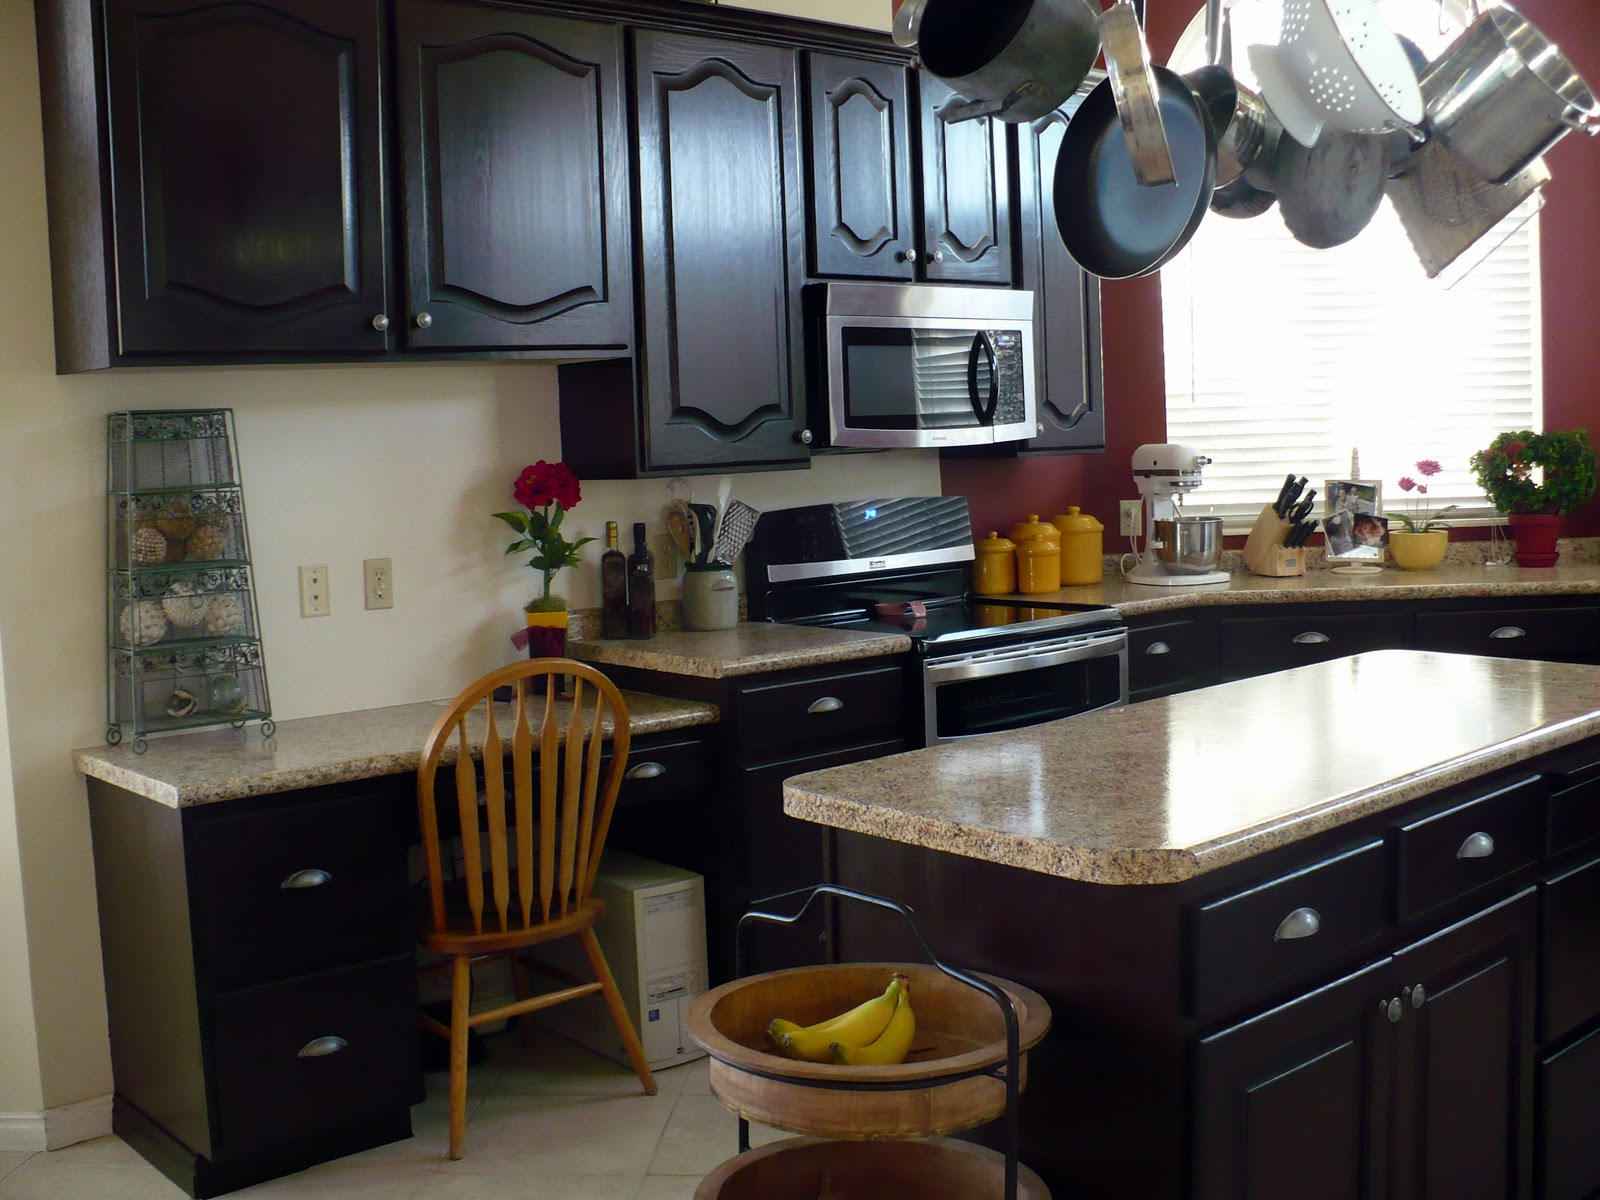 Pics of Painted Kitchen Cabinets with Granite Countertops